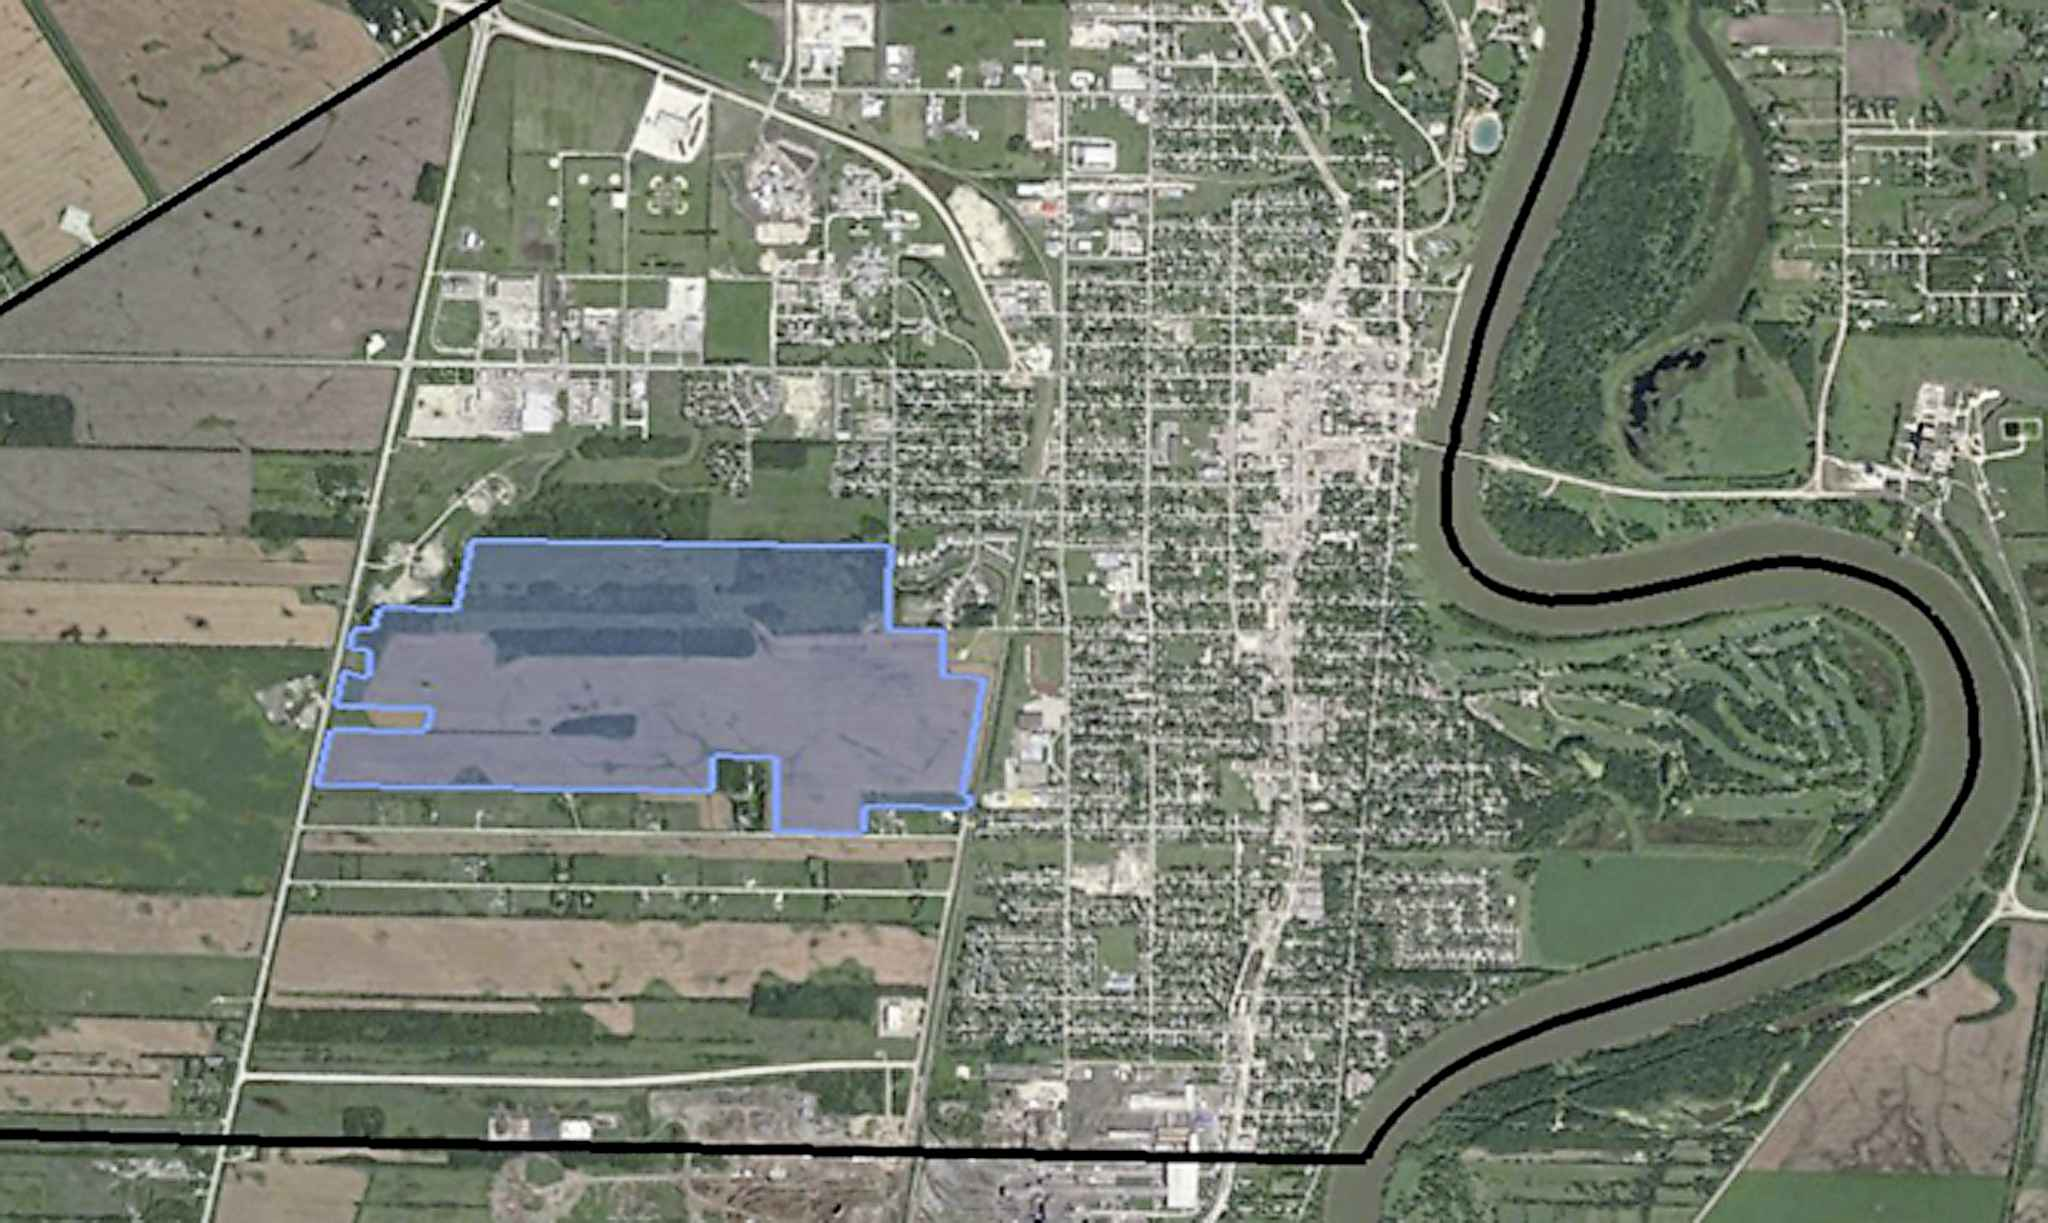 Highlighted area marks the 326.5-acre parcel of land which the City of Selkirk bought for $3.2 million.